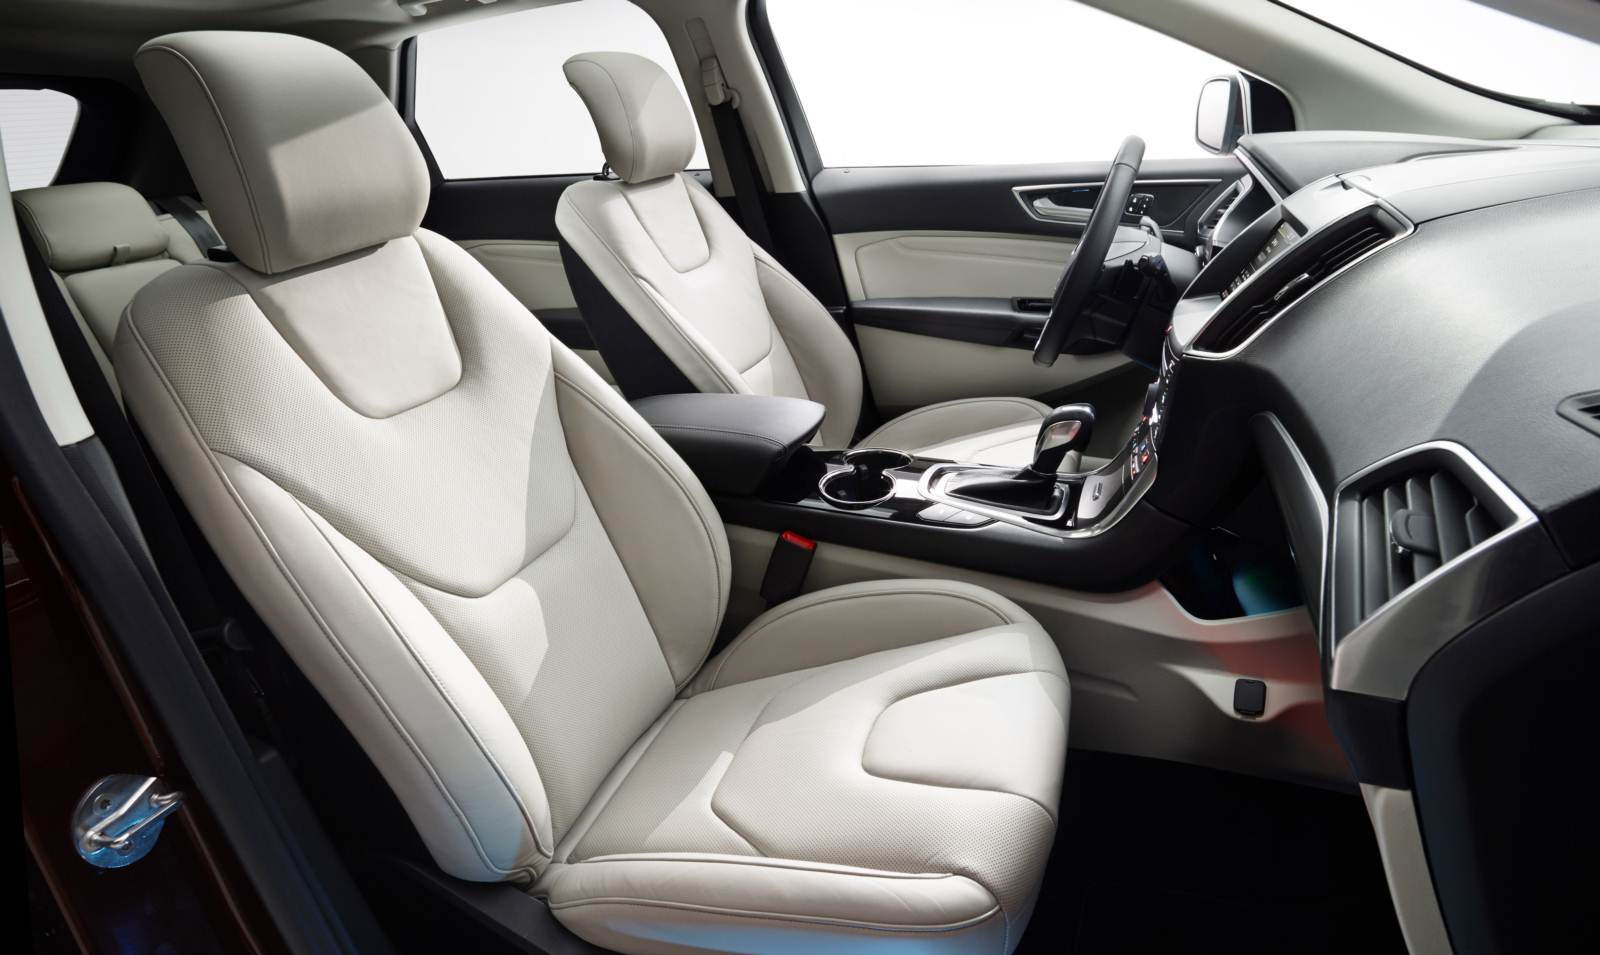 novo ford edge 2015 fotos v deo e especifica es car blog br. Black Bedroom Furniture Sets. Home Design Ideas